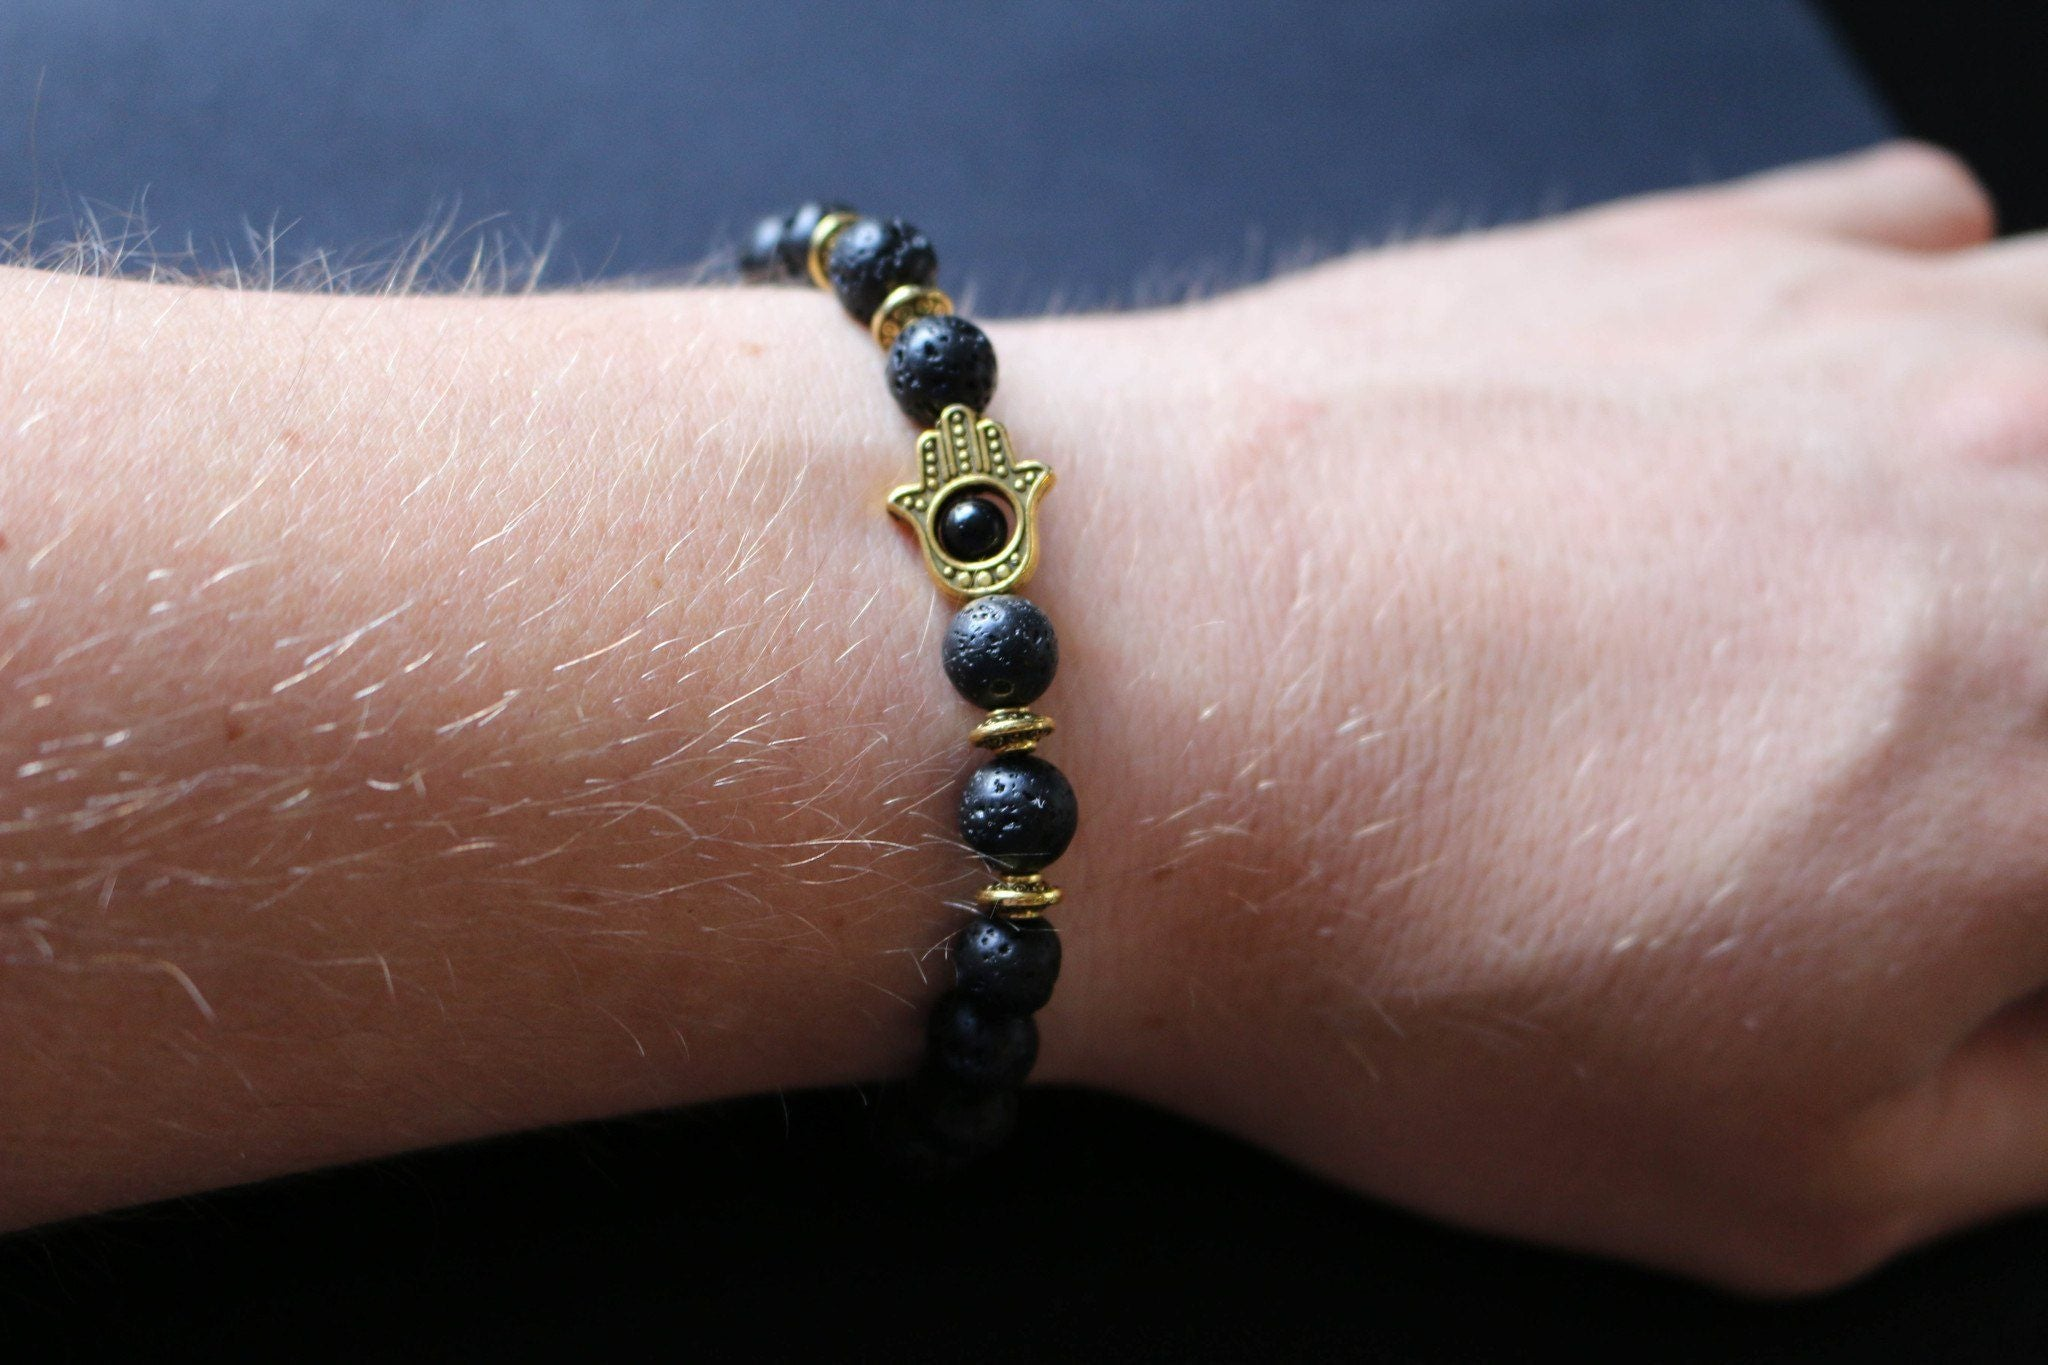 Lava Stone Bead Bracelet With Gold Hamsa Charm on wrist